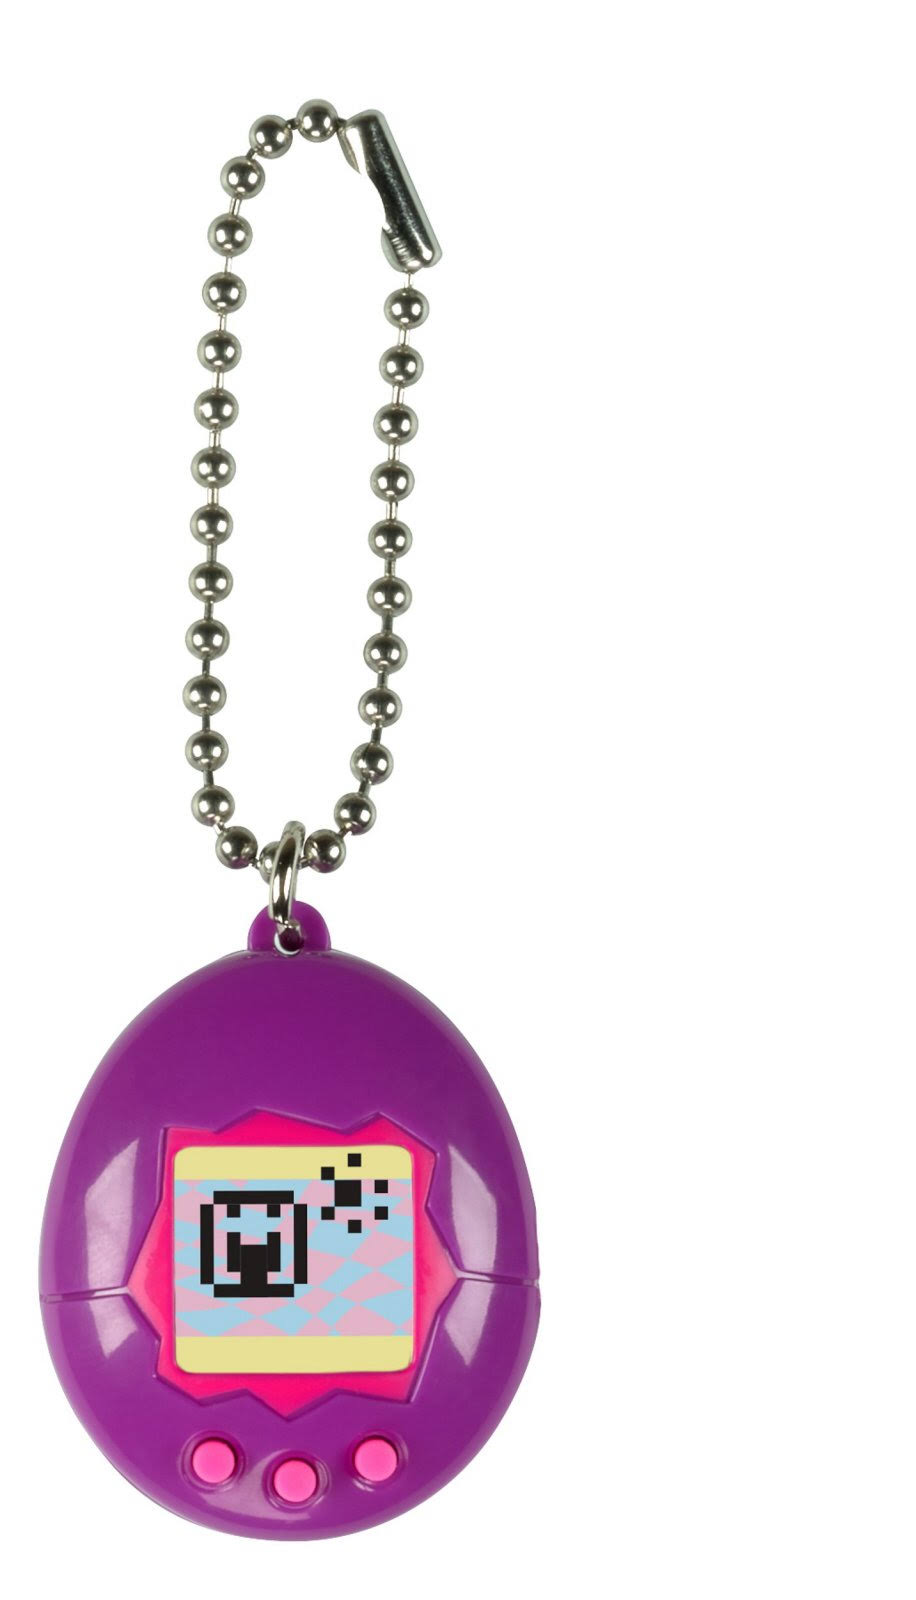 Bandai Tamagotchi Series 2 Virtual Pet - Purple with Pink